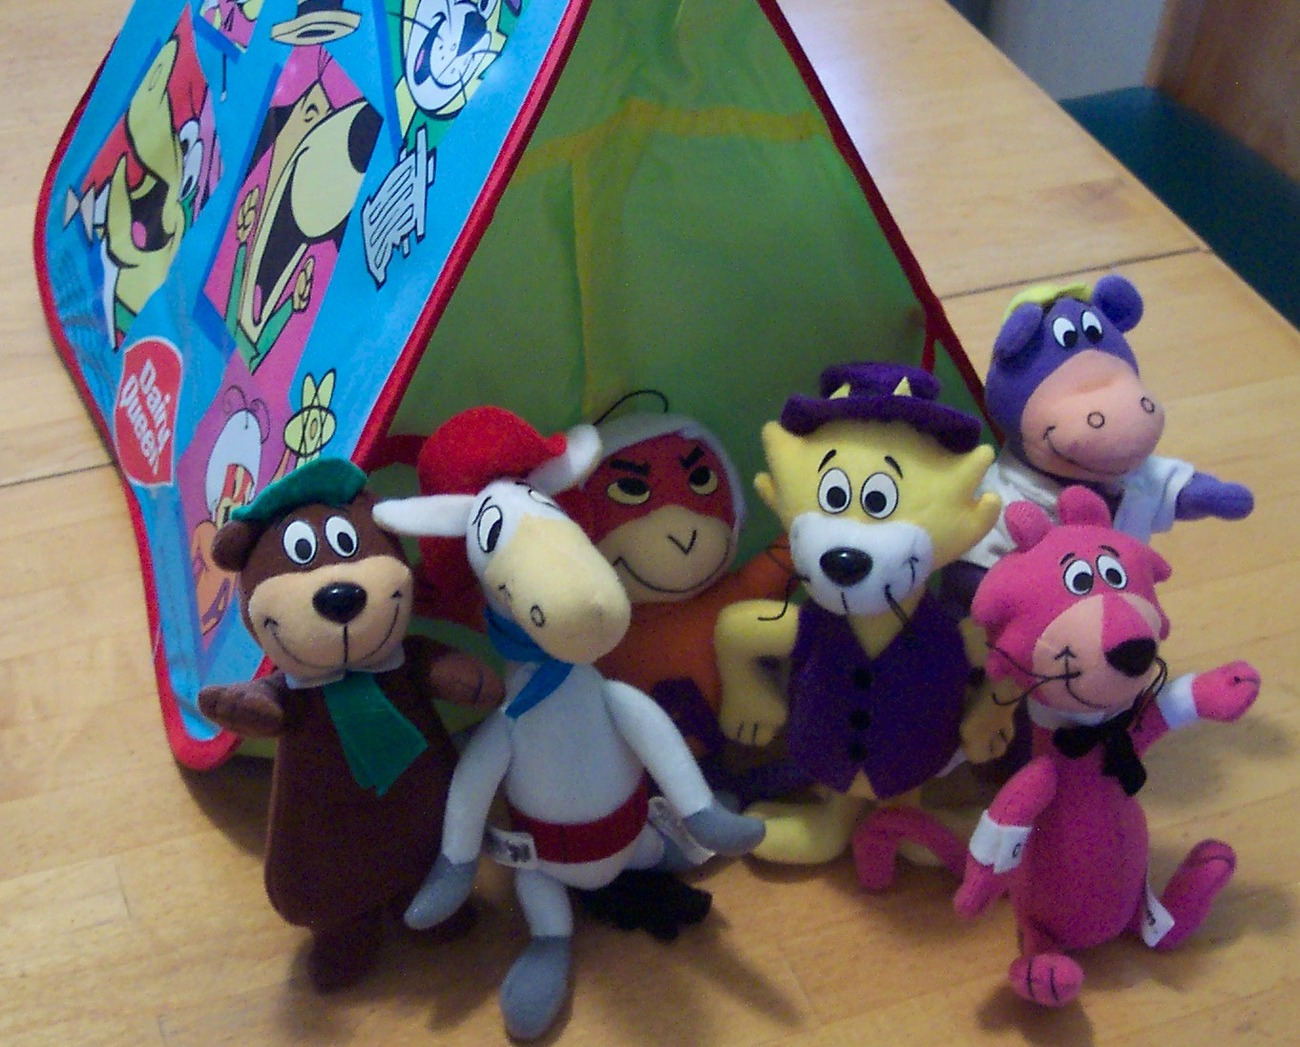 dairy queen hanna barbera plush figures with tent other